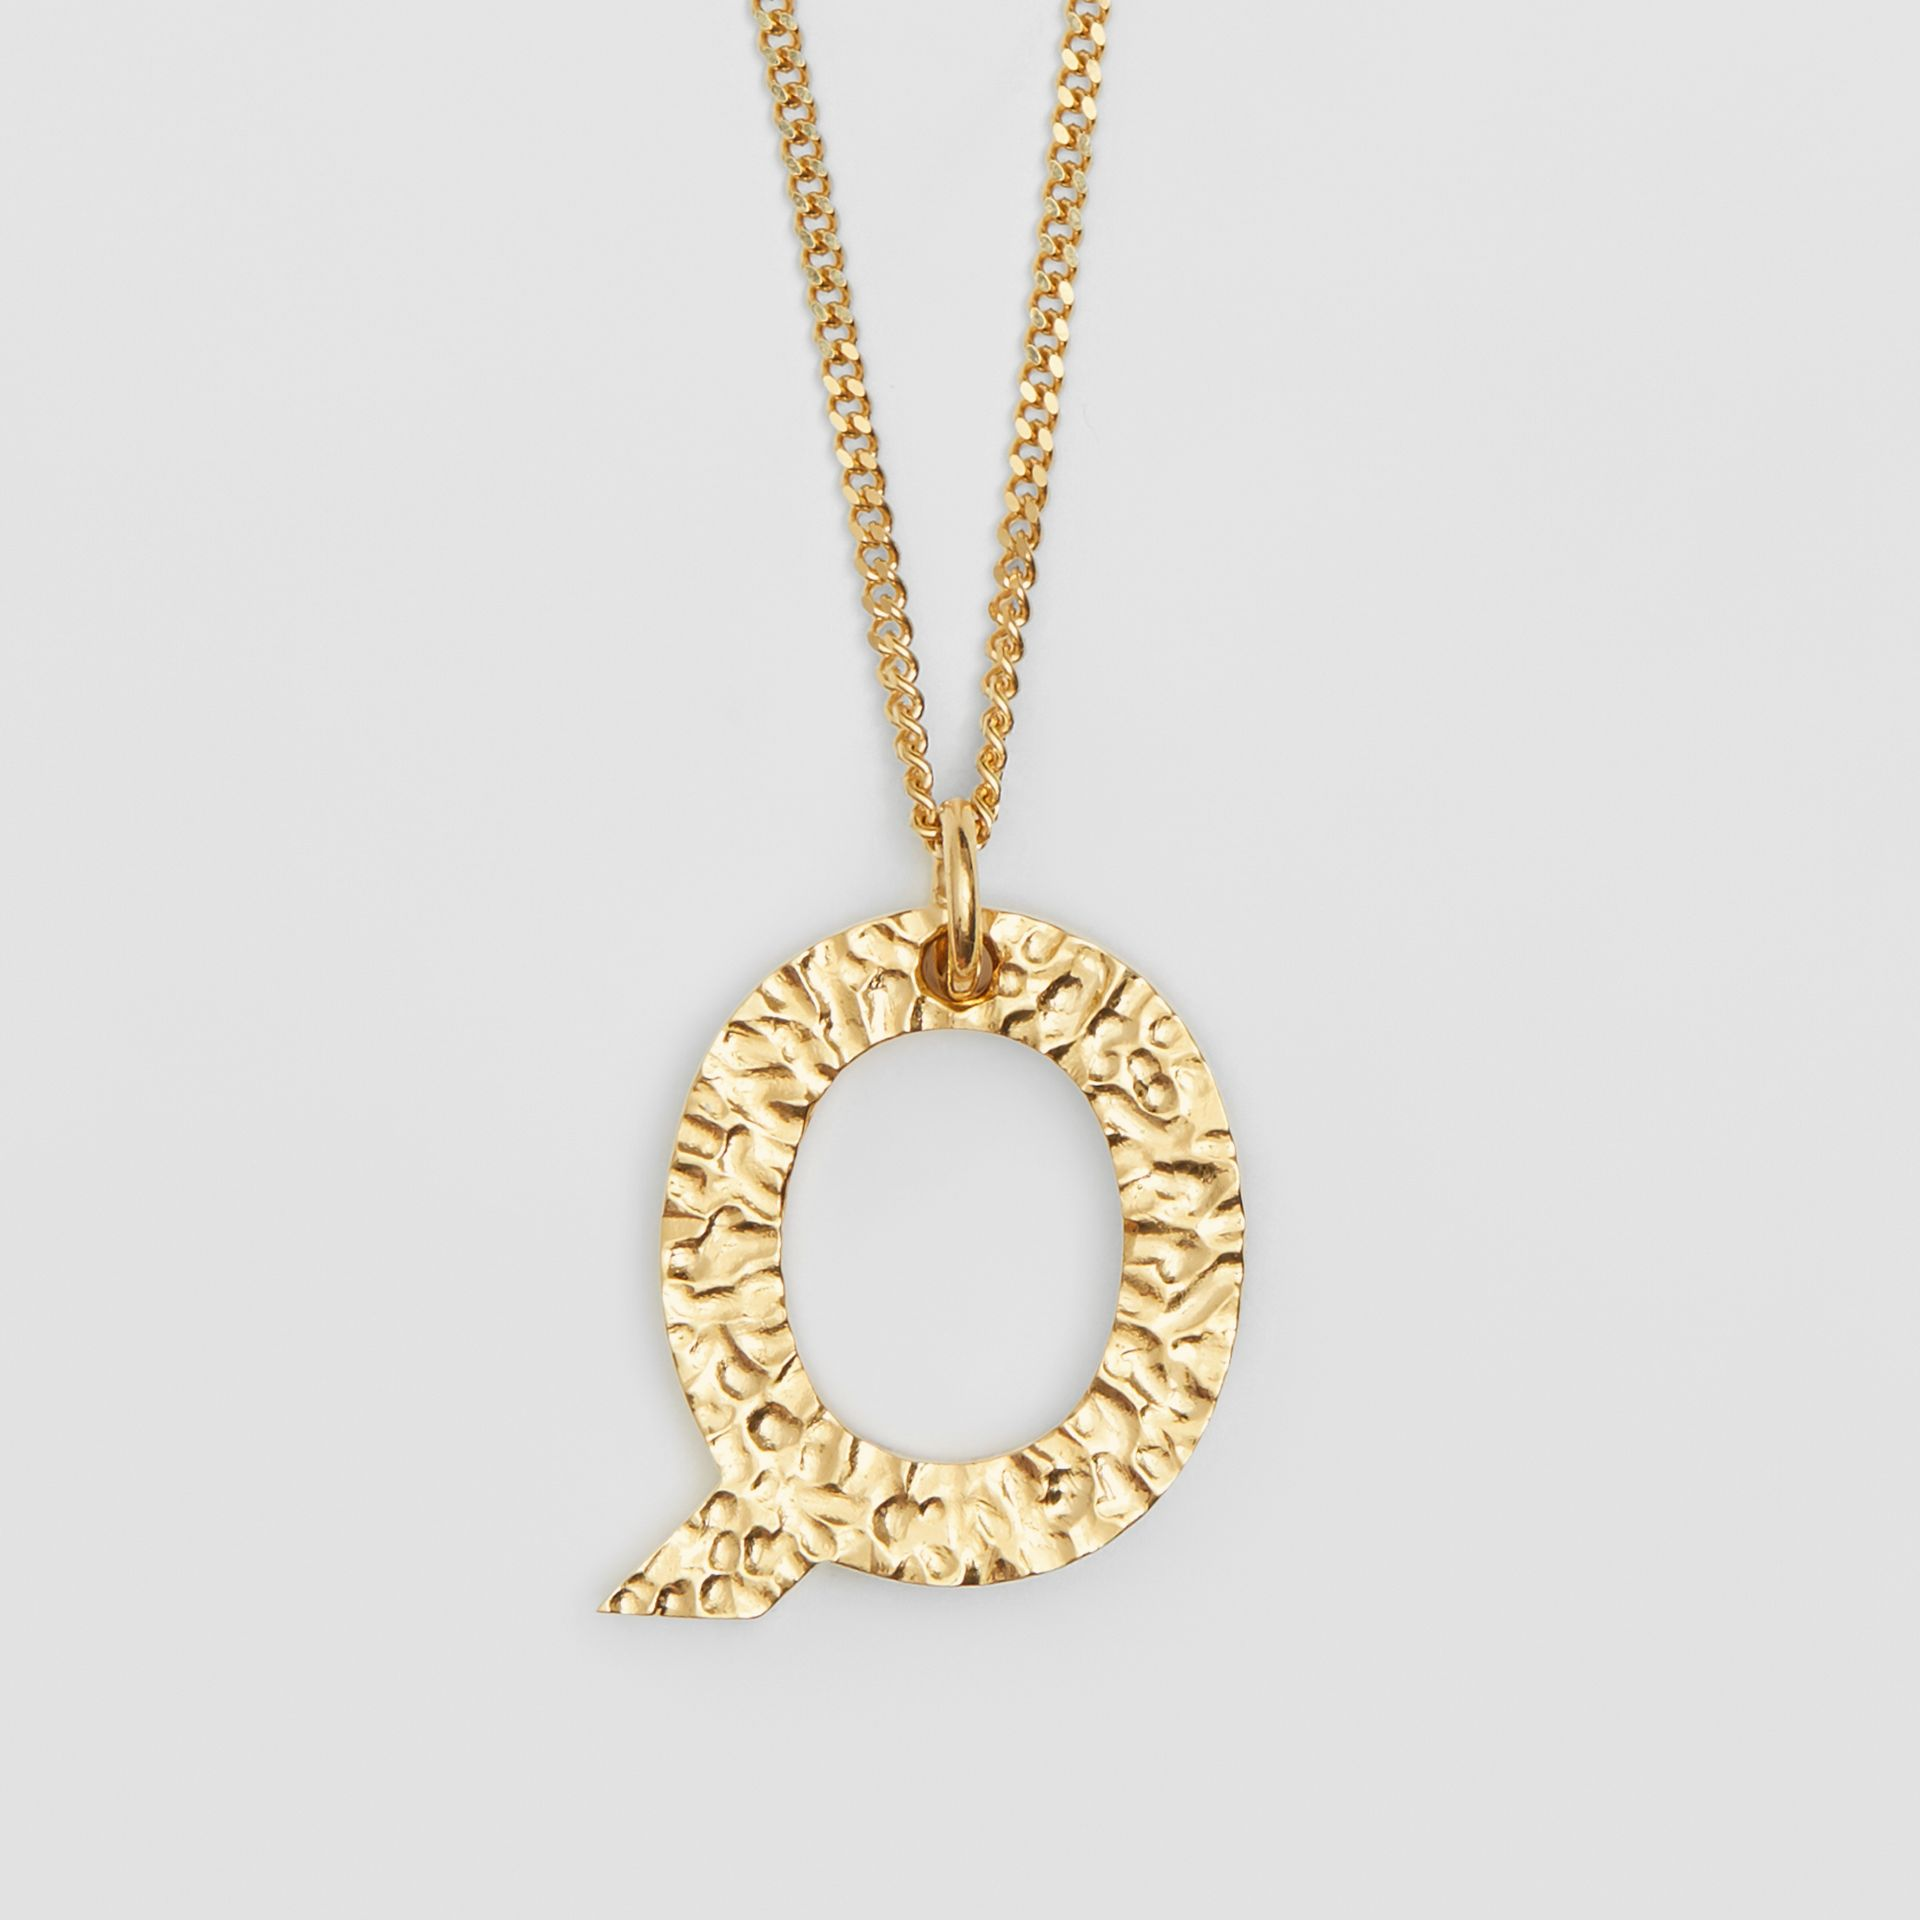 'Q' Alphabet Charm Gold-plated Necklace in Light - Women | Burberry United Kingdom - gallery image 2